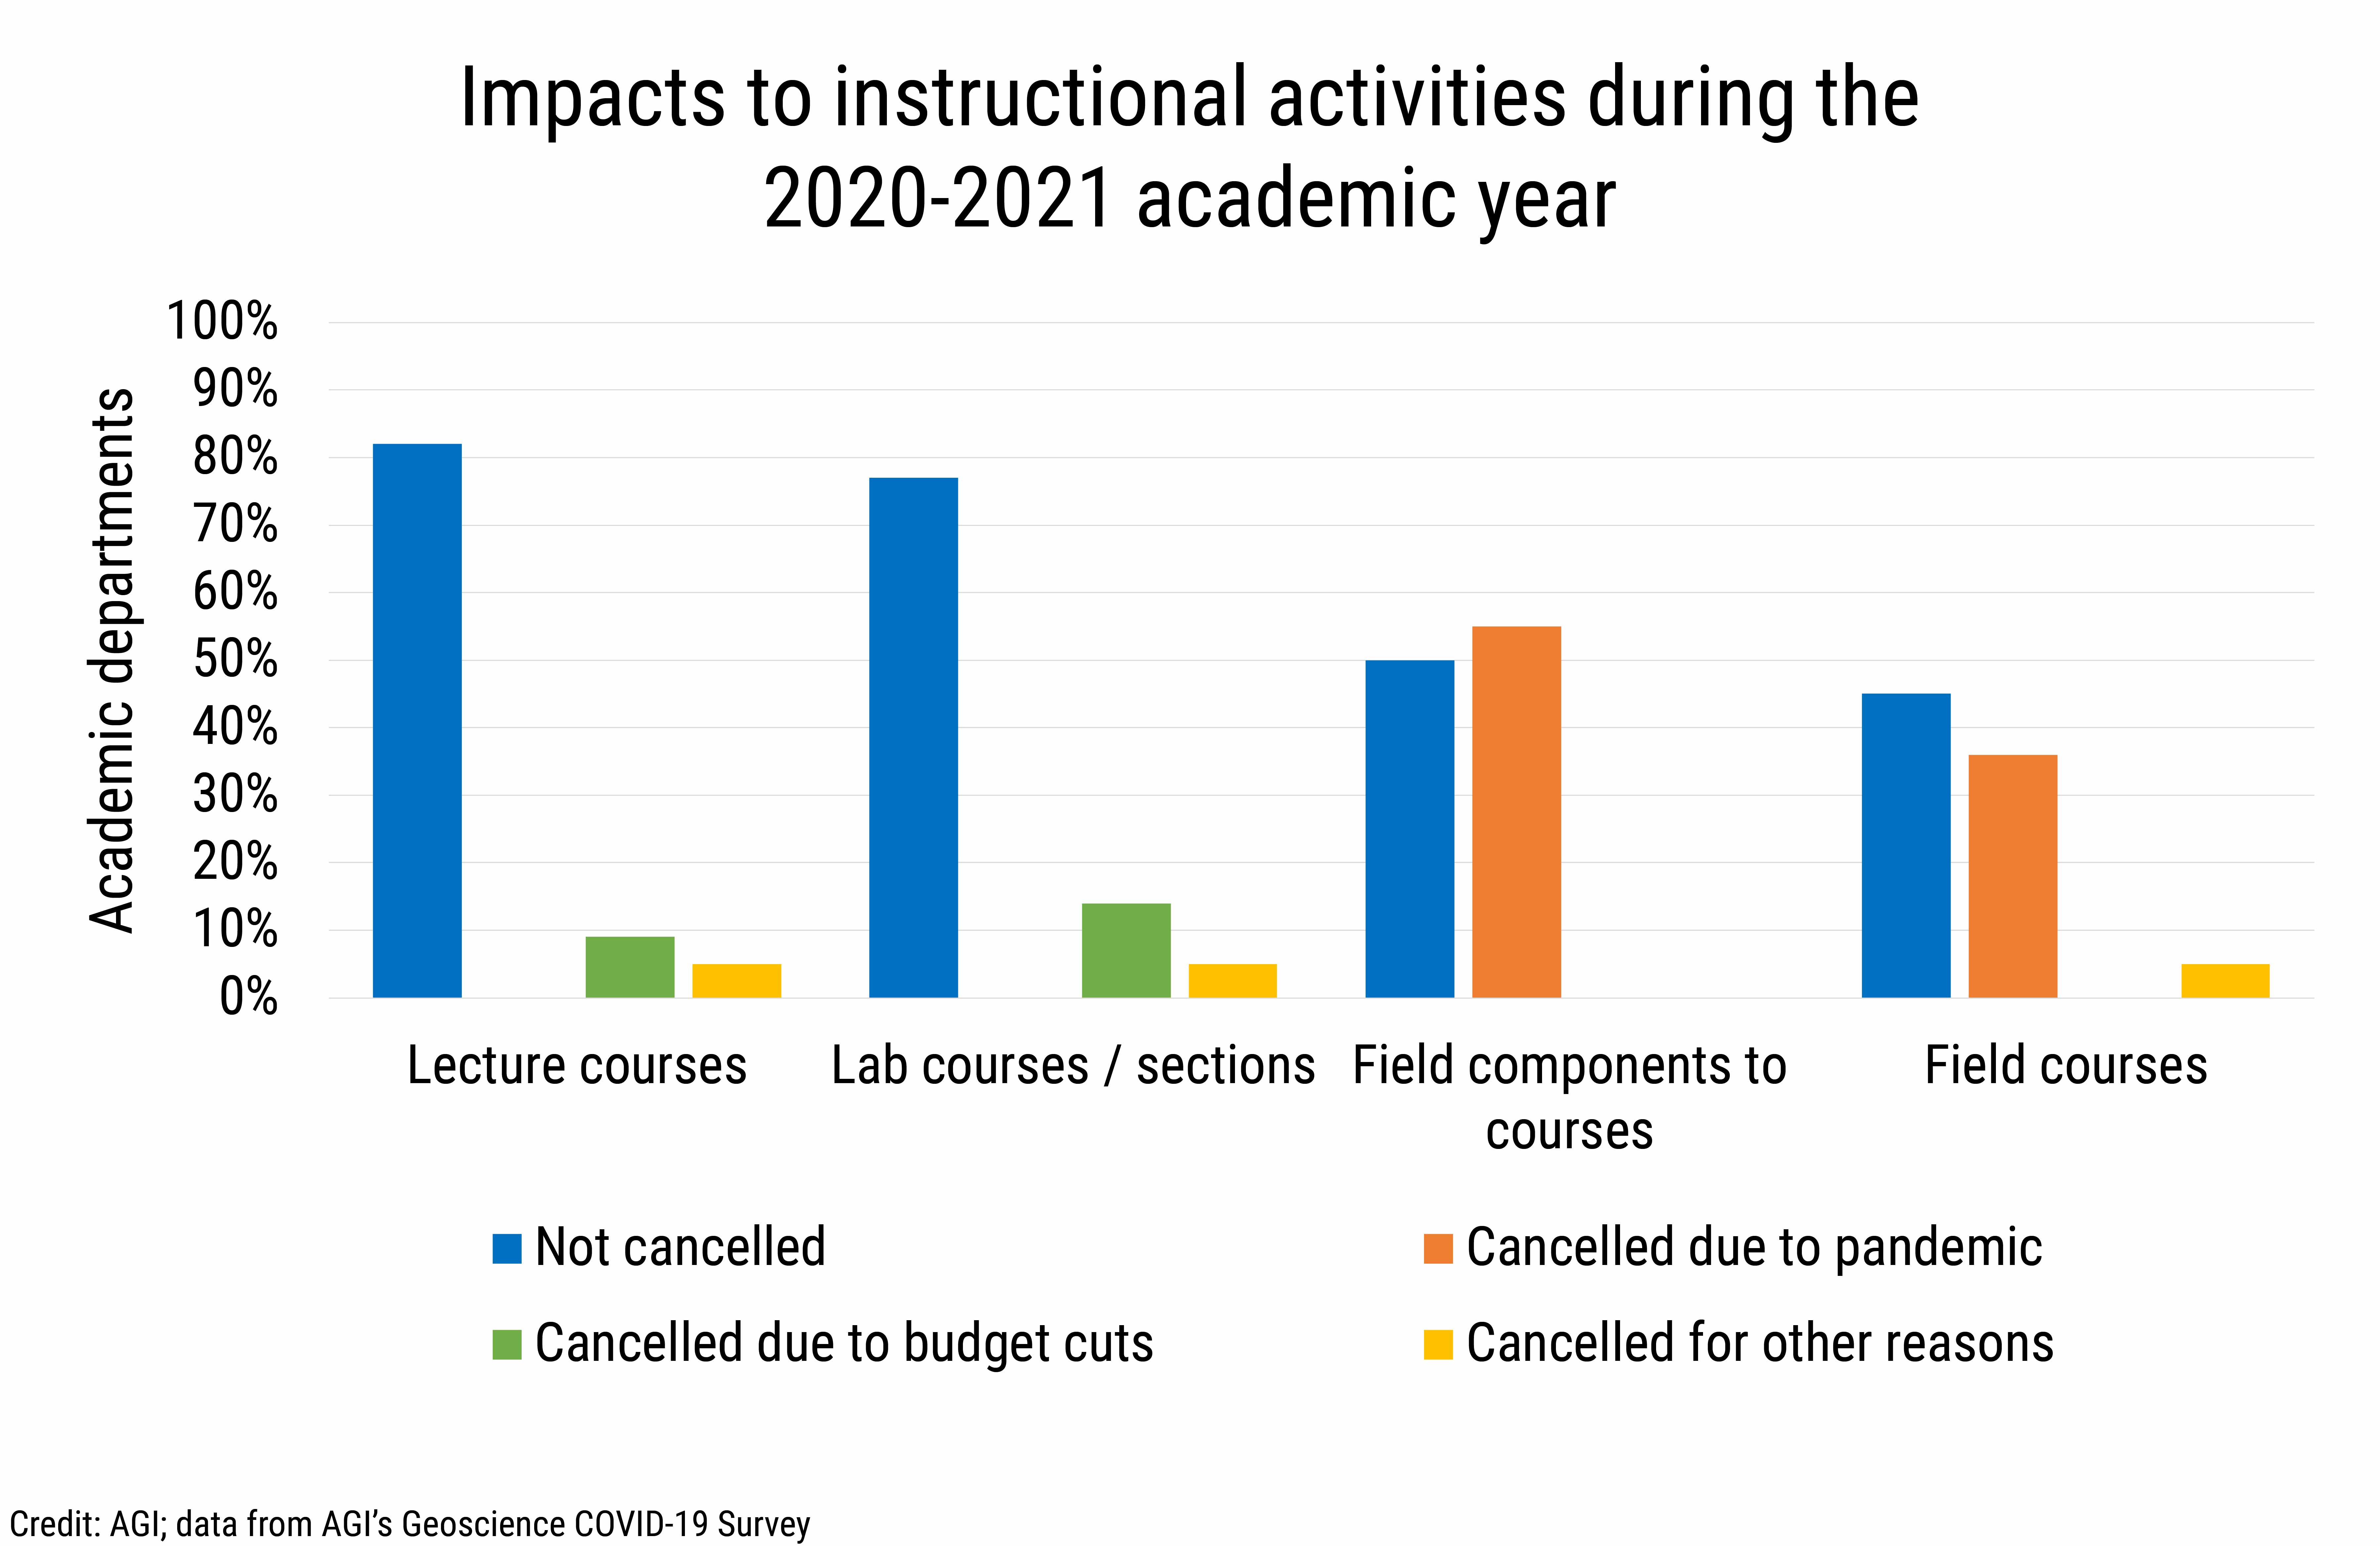 DB_2021-014 chart 10: Impacts to instructional activities during the 2020-2021 academic year (Credit: AGI; data from AGI's Geoscience COVID-19 Survey)